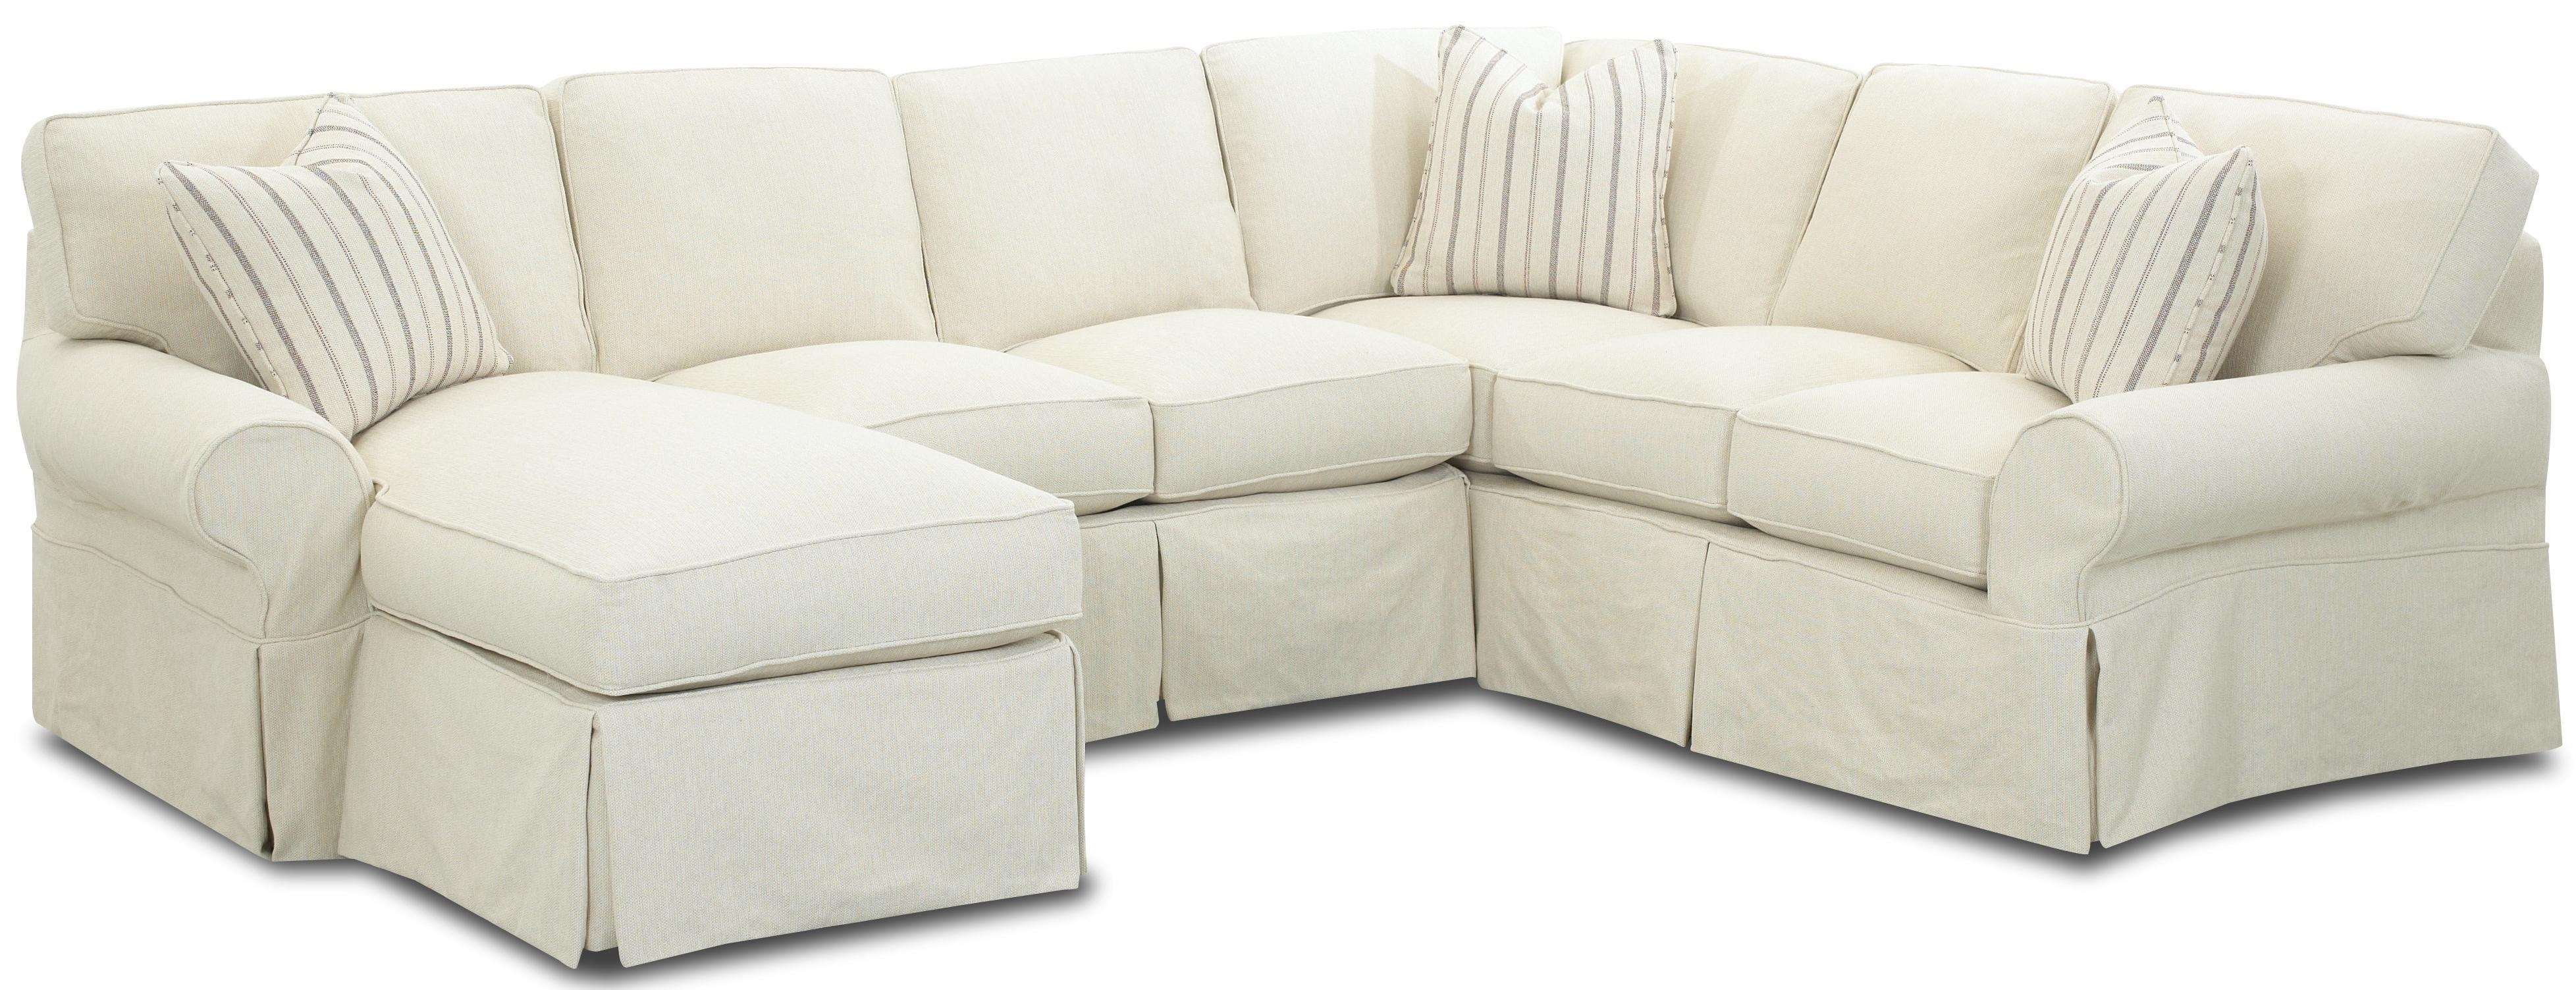 Chaise Sectional Sofa Slipcover | Tehranmix Decoration For Chaise Sectional Slipcover (Image 2 of 15)